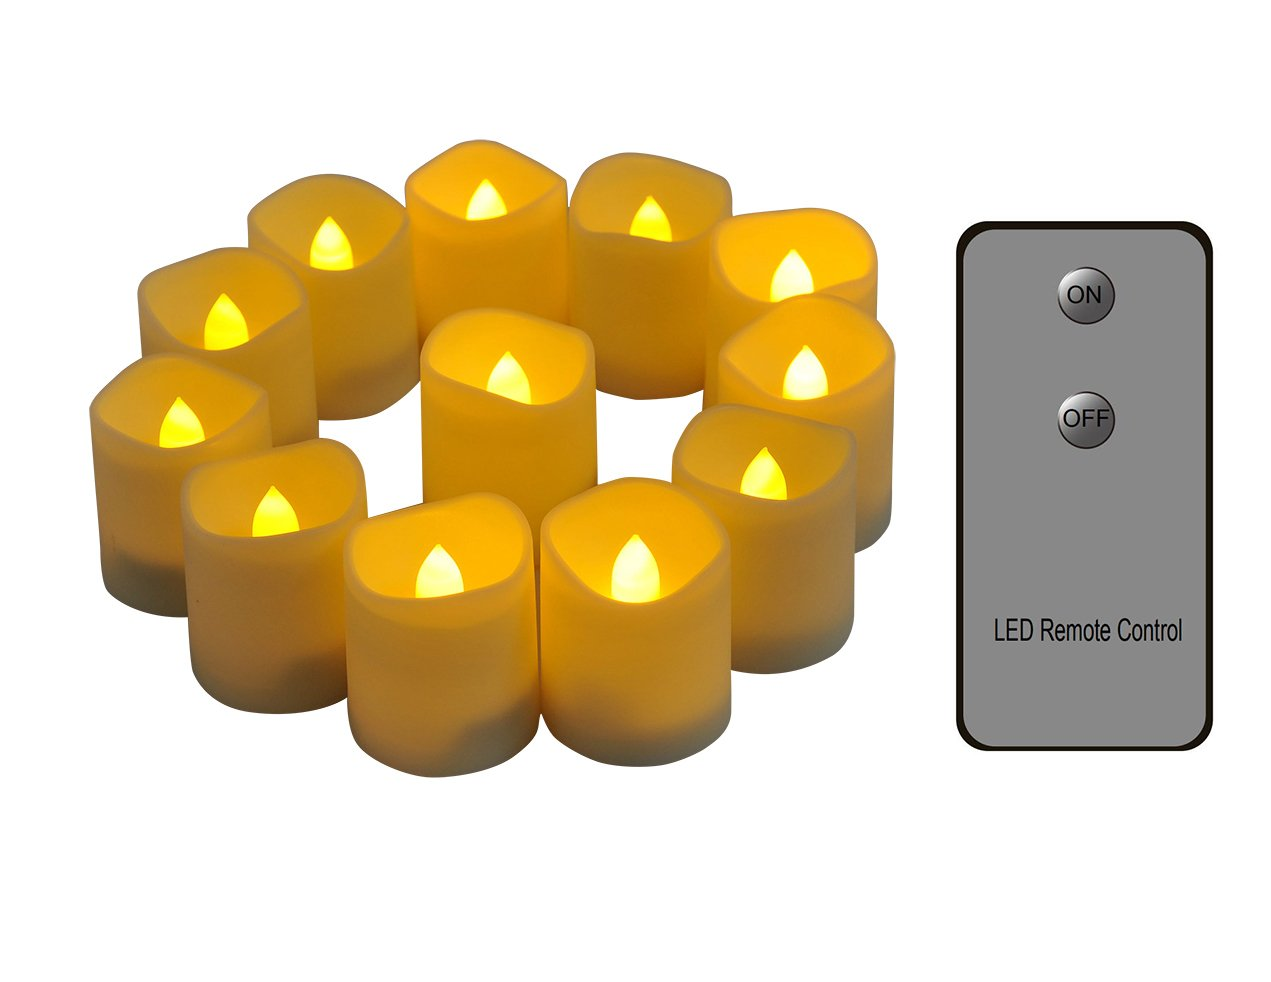 Flameless Candles with Remote Long Lasting 200 Hours Unscented LED Tealight Candles CR2450 Battery Operated Electric Votive Candles Set of 12 Realistic Flickering Flame Fake Candles Warm Night Lights